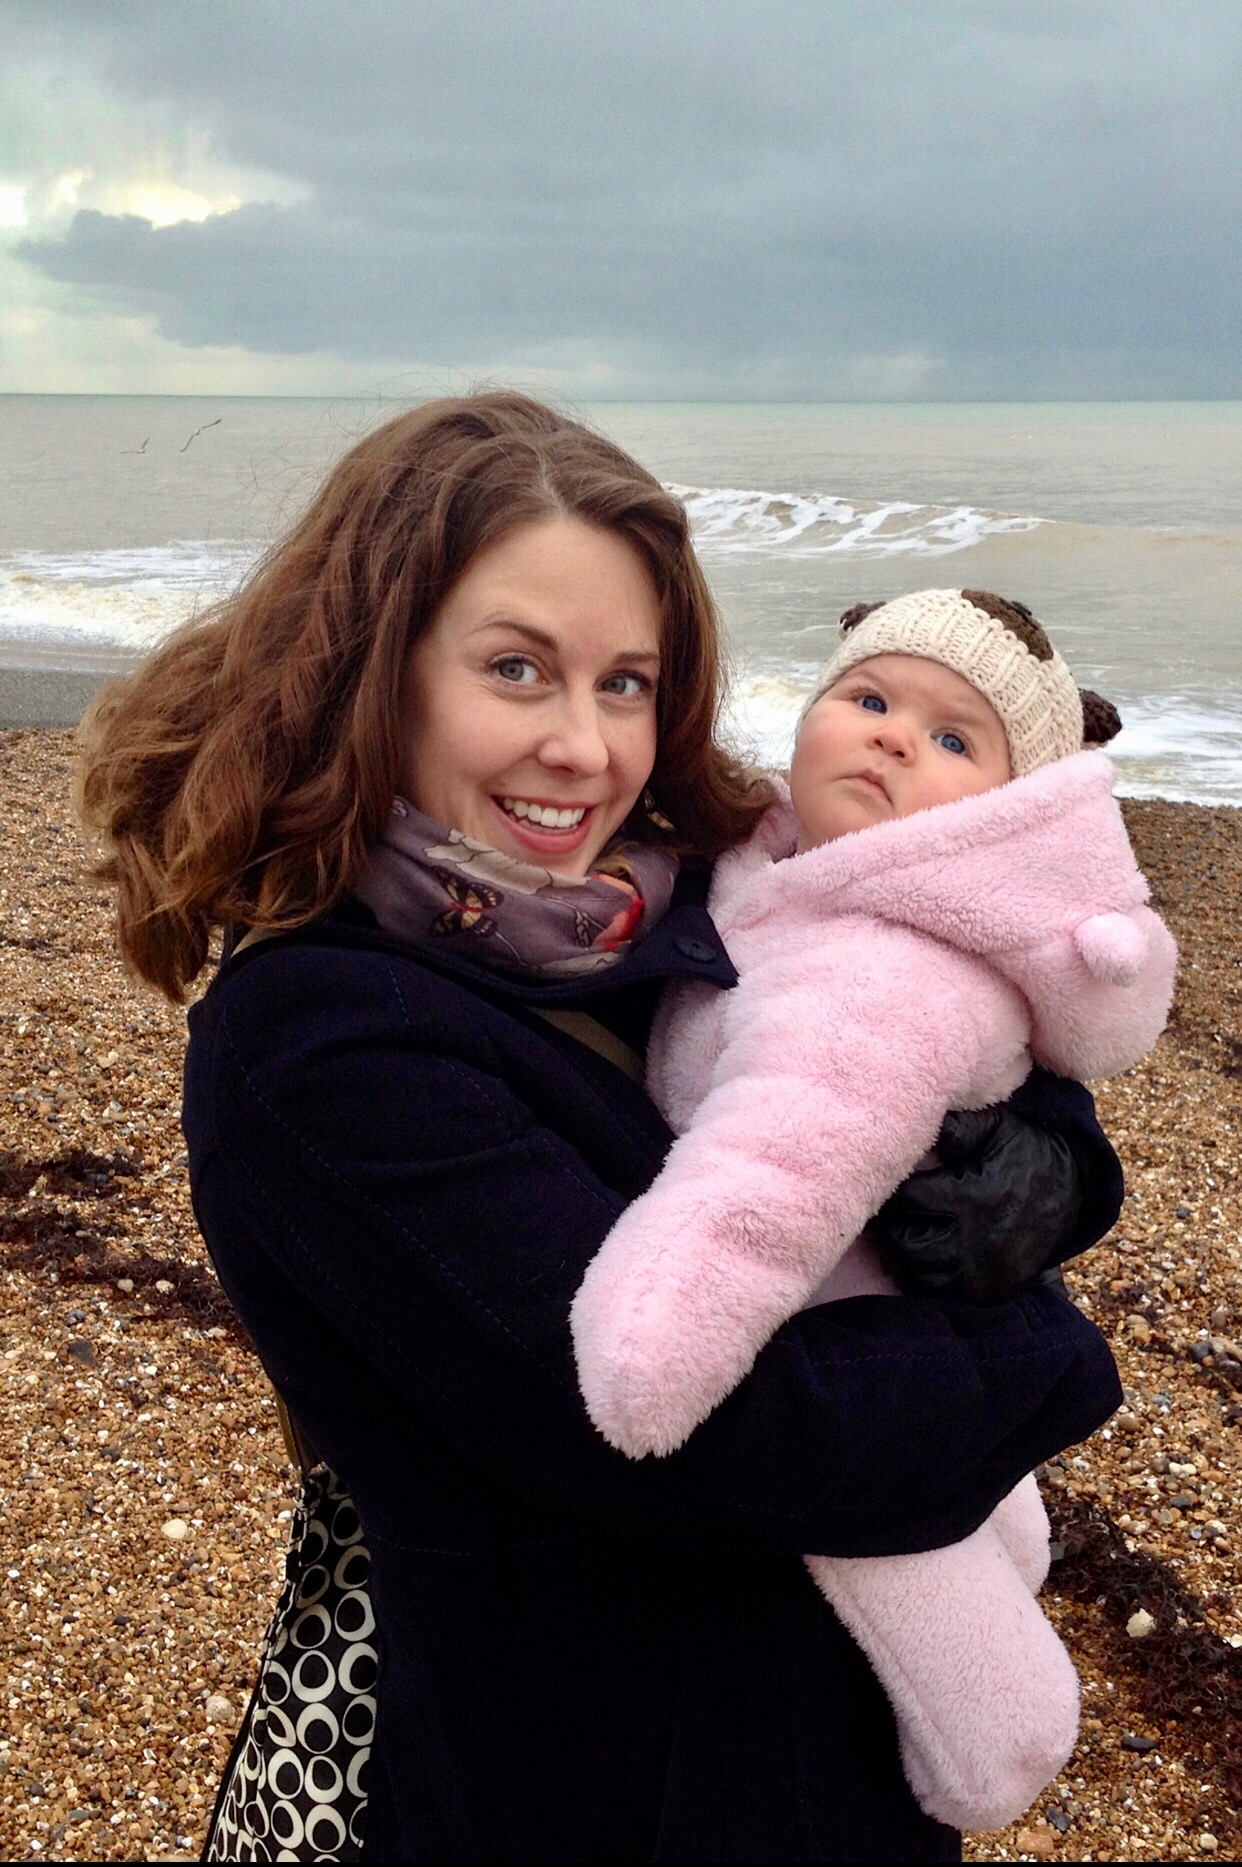 Kara Gammell and her daughter on a beach